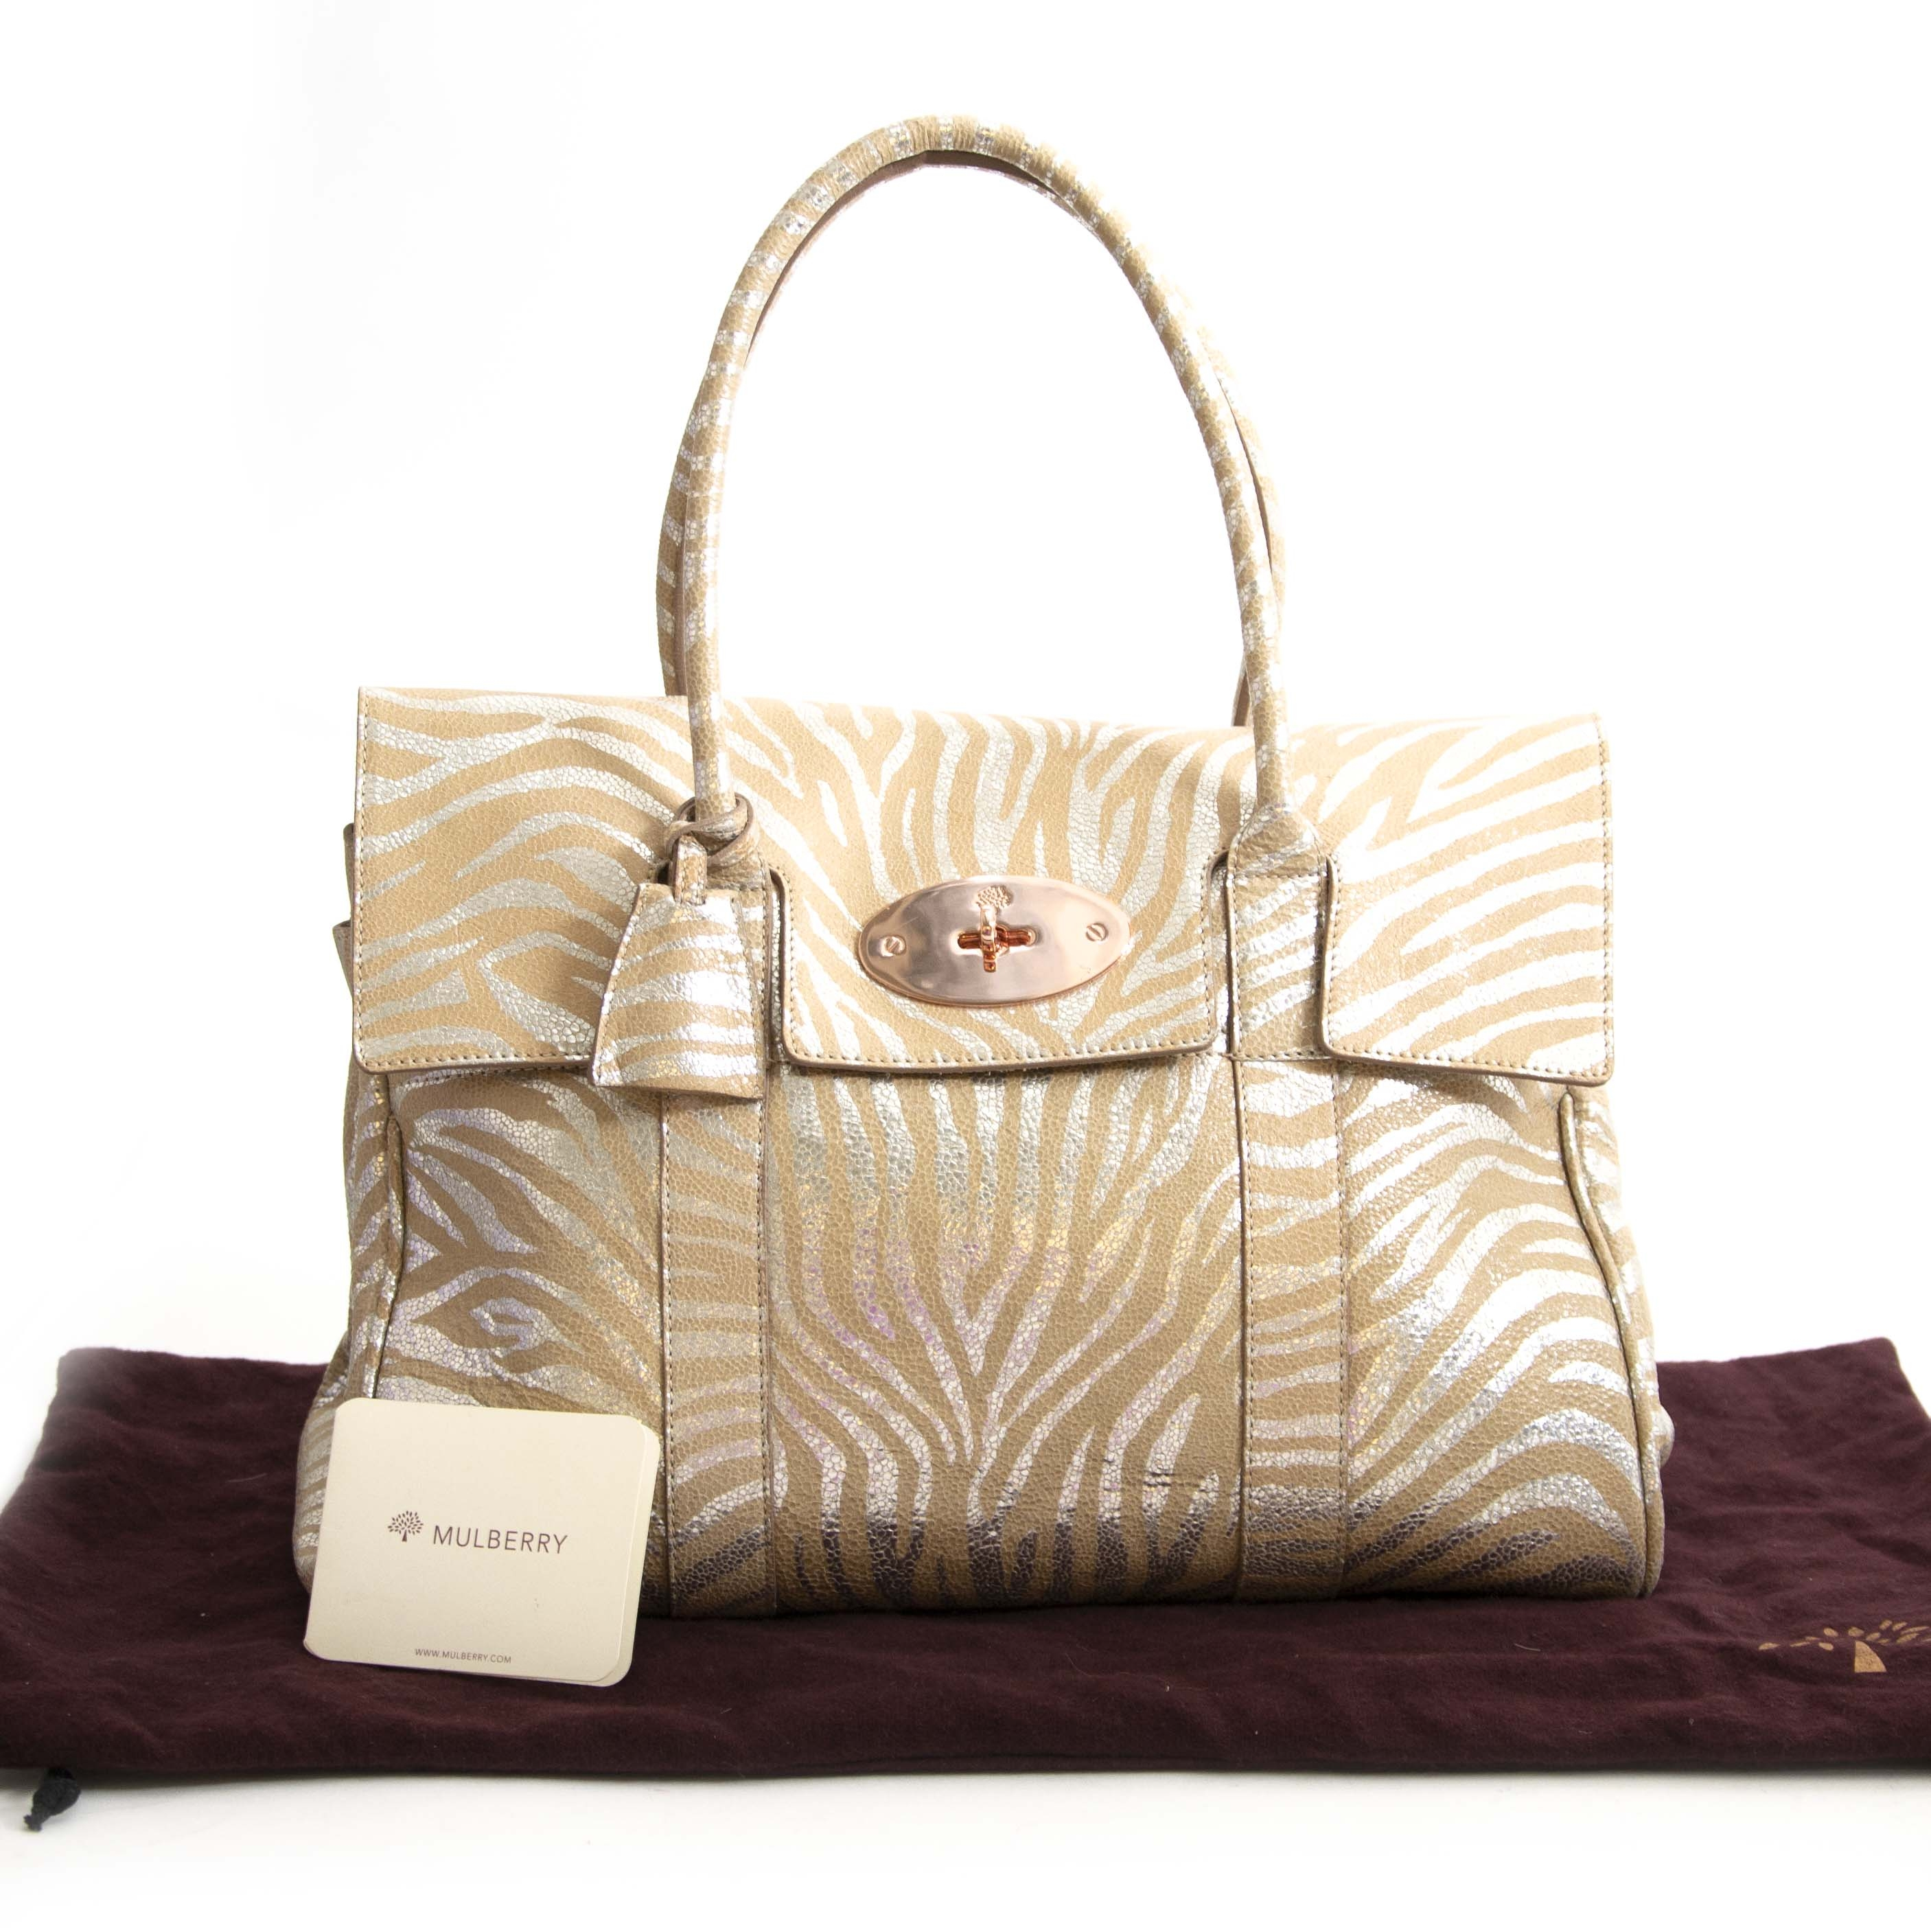 Buy this authentic second hand vintage Mulberry Bayswater Metallic Tiger Bag at online webshop LabelLOV. Safe and secure shopping. Koop authentieke tweedehands vintage Mulberry Bayswater Metallic Tiger Bag bij online webshop LabelLOV.